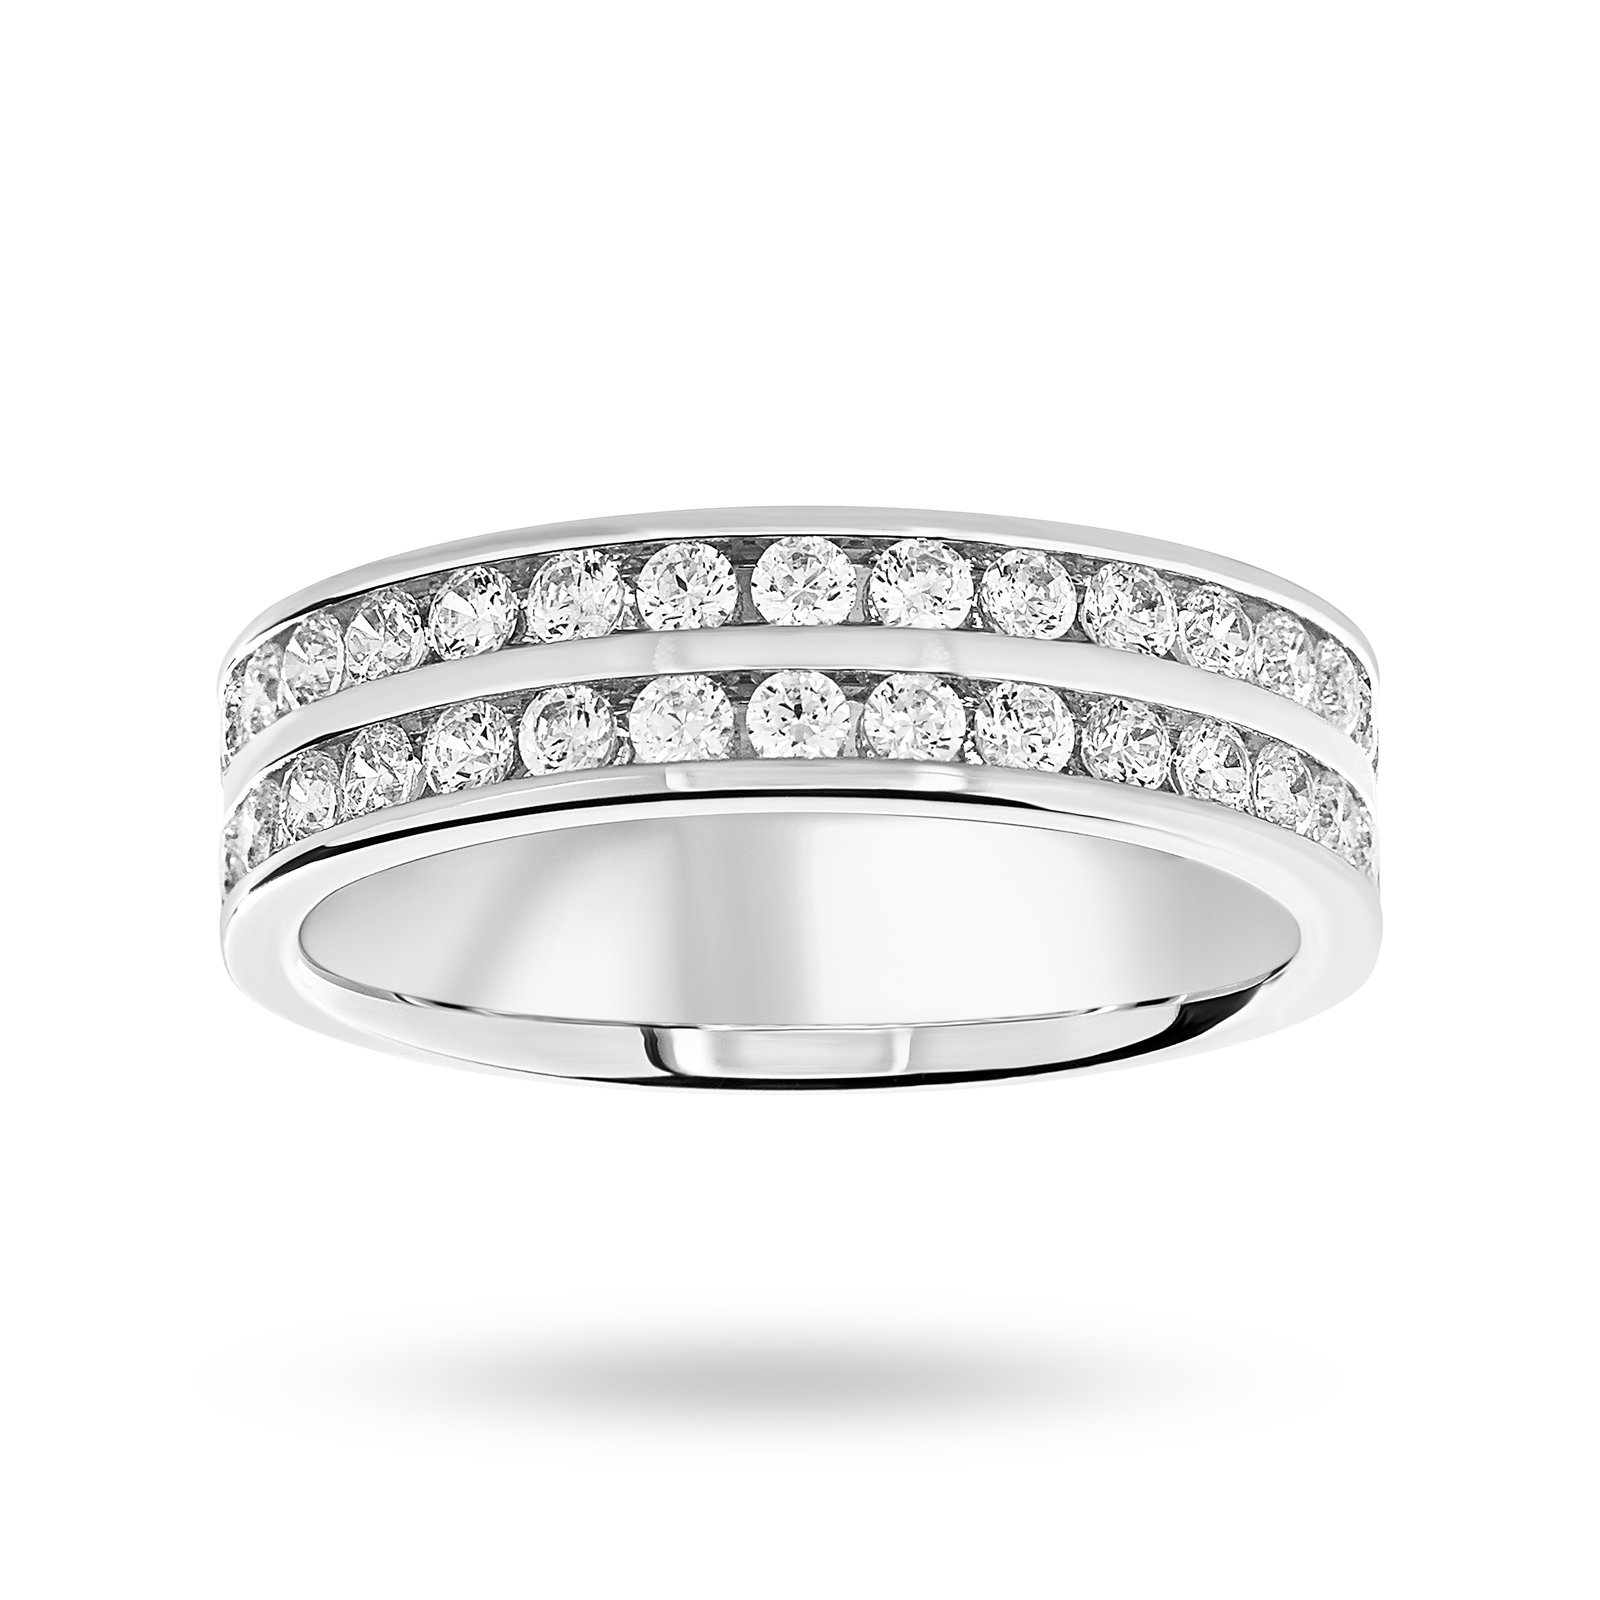 Platinum 0.75 Carat Brilliant Cut 2 Row Half Eternity Ring